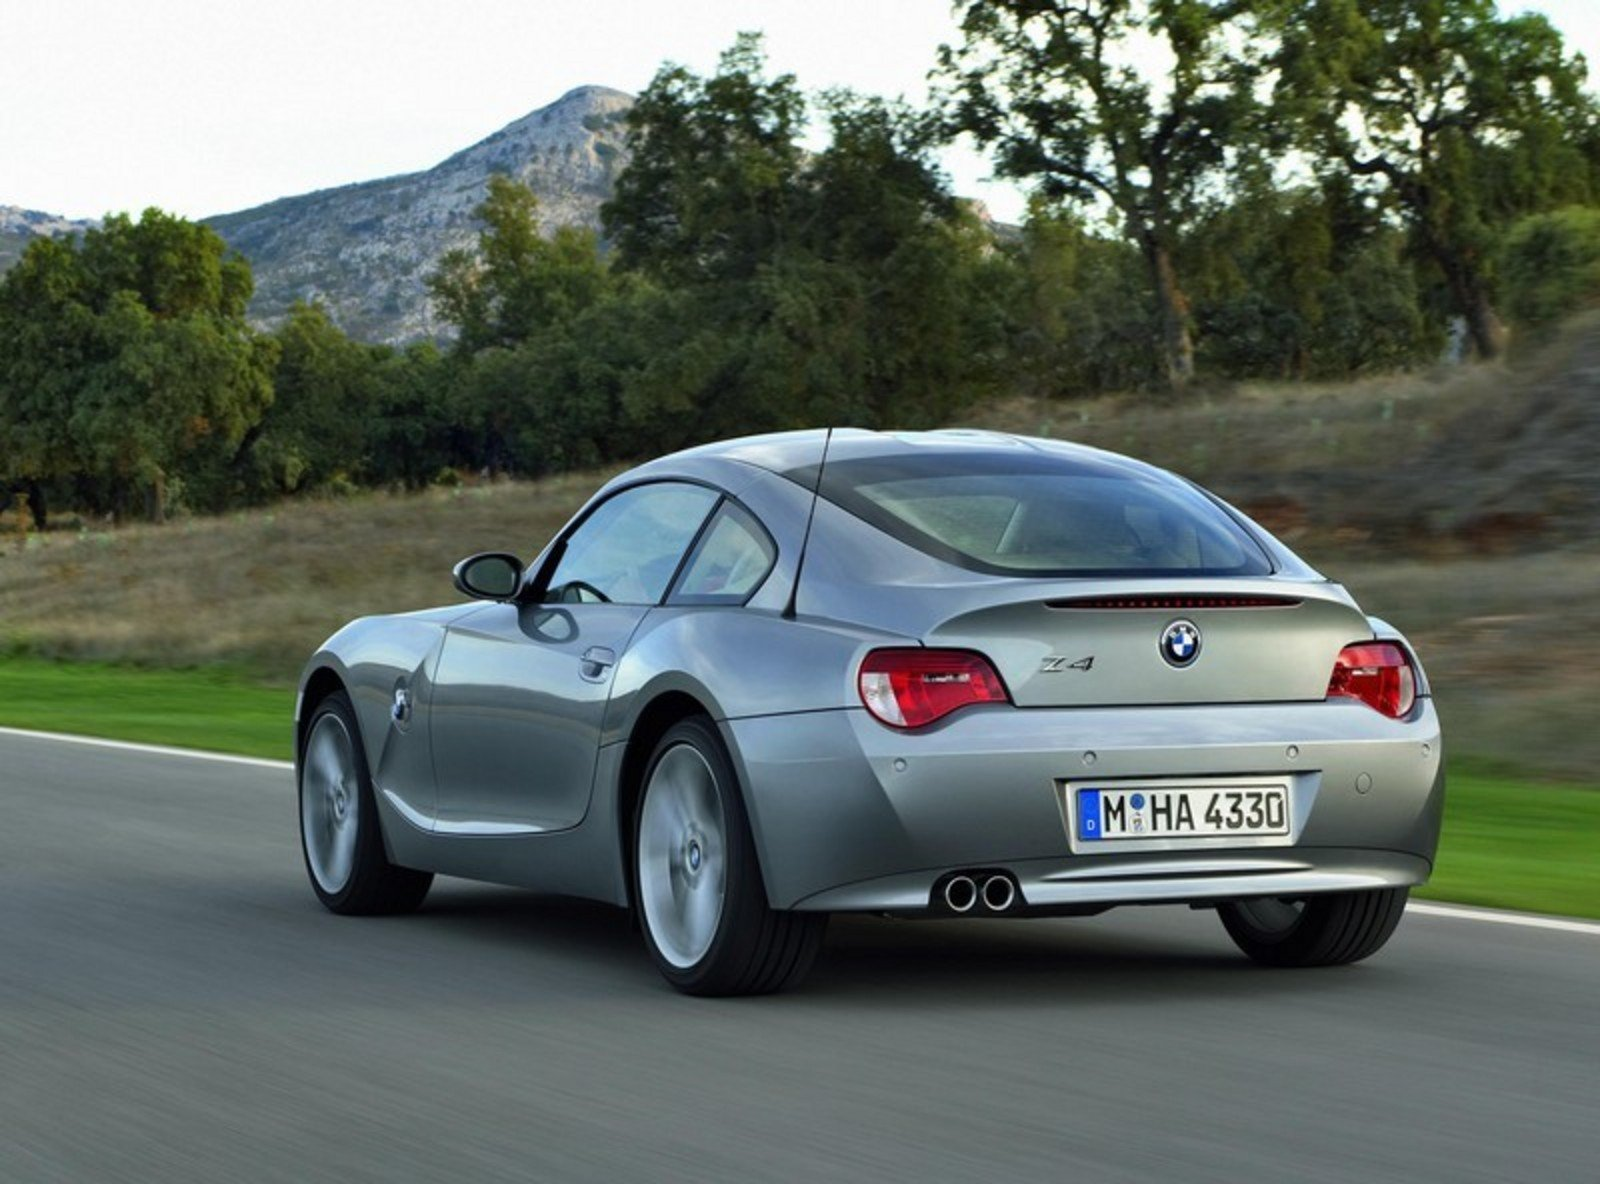 2007 Bmw Z4 Coupe Picture 55020 Car Review Top Speed